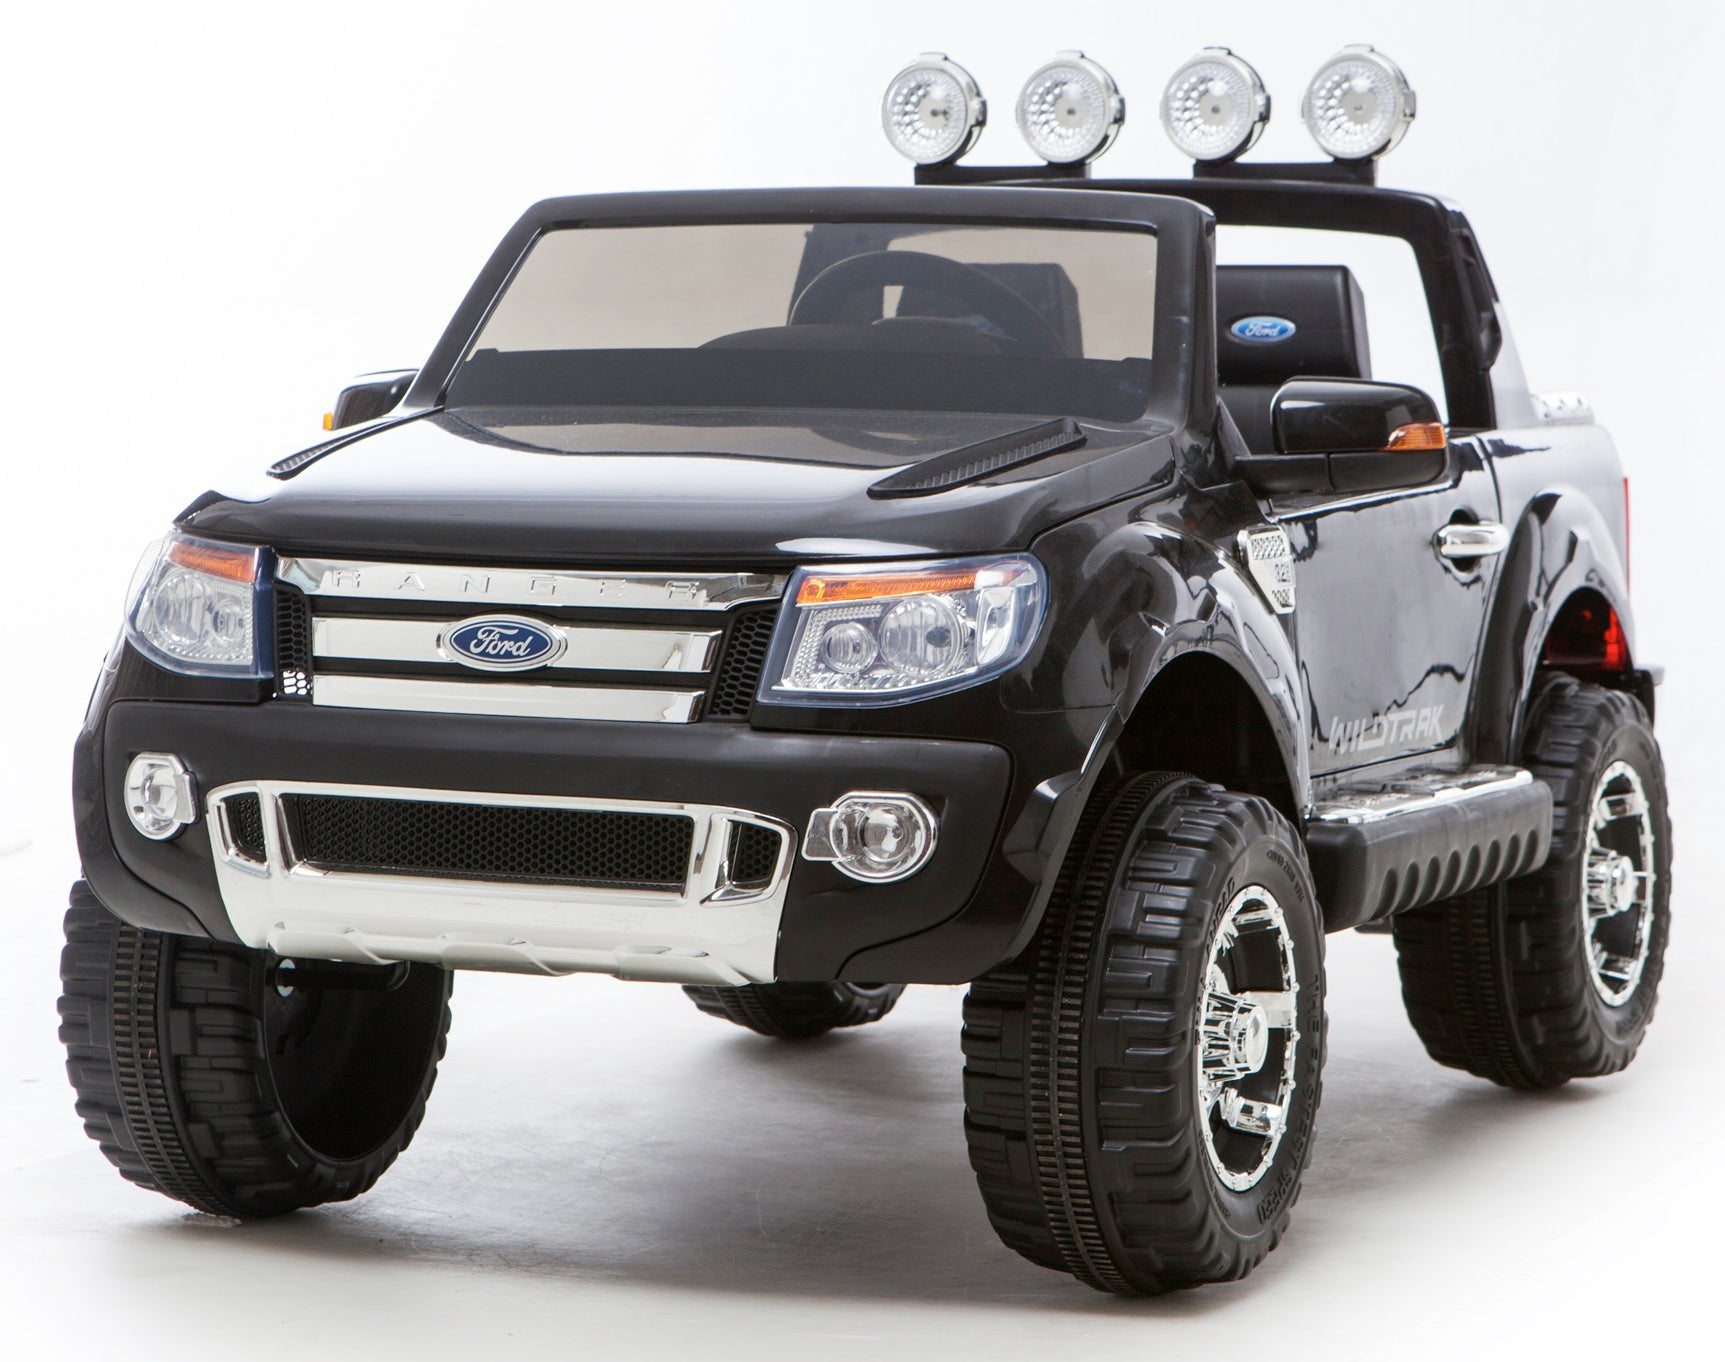 black ricco licensed ford ranger 4x4 kids electric ride on. Black Bedroom Furniture Sets. Home Design Ideas